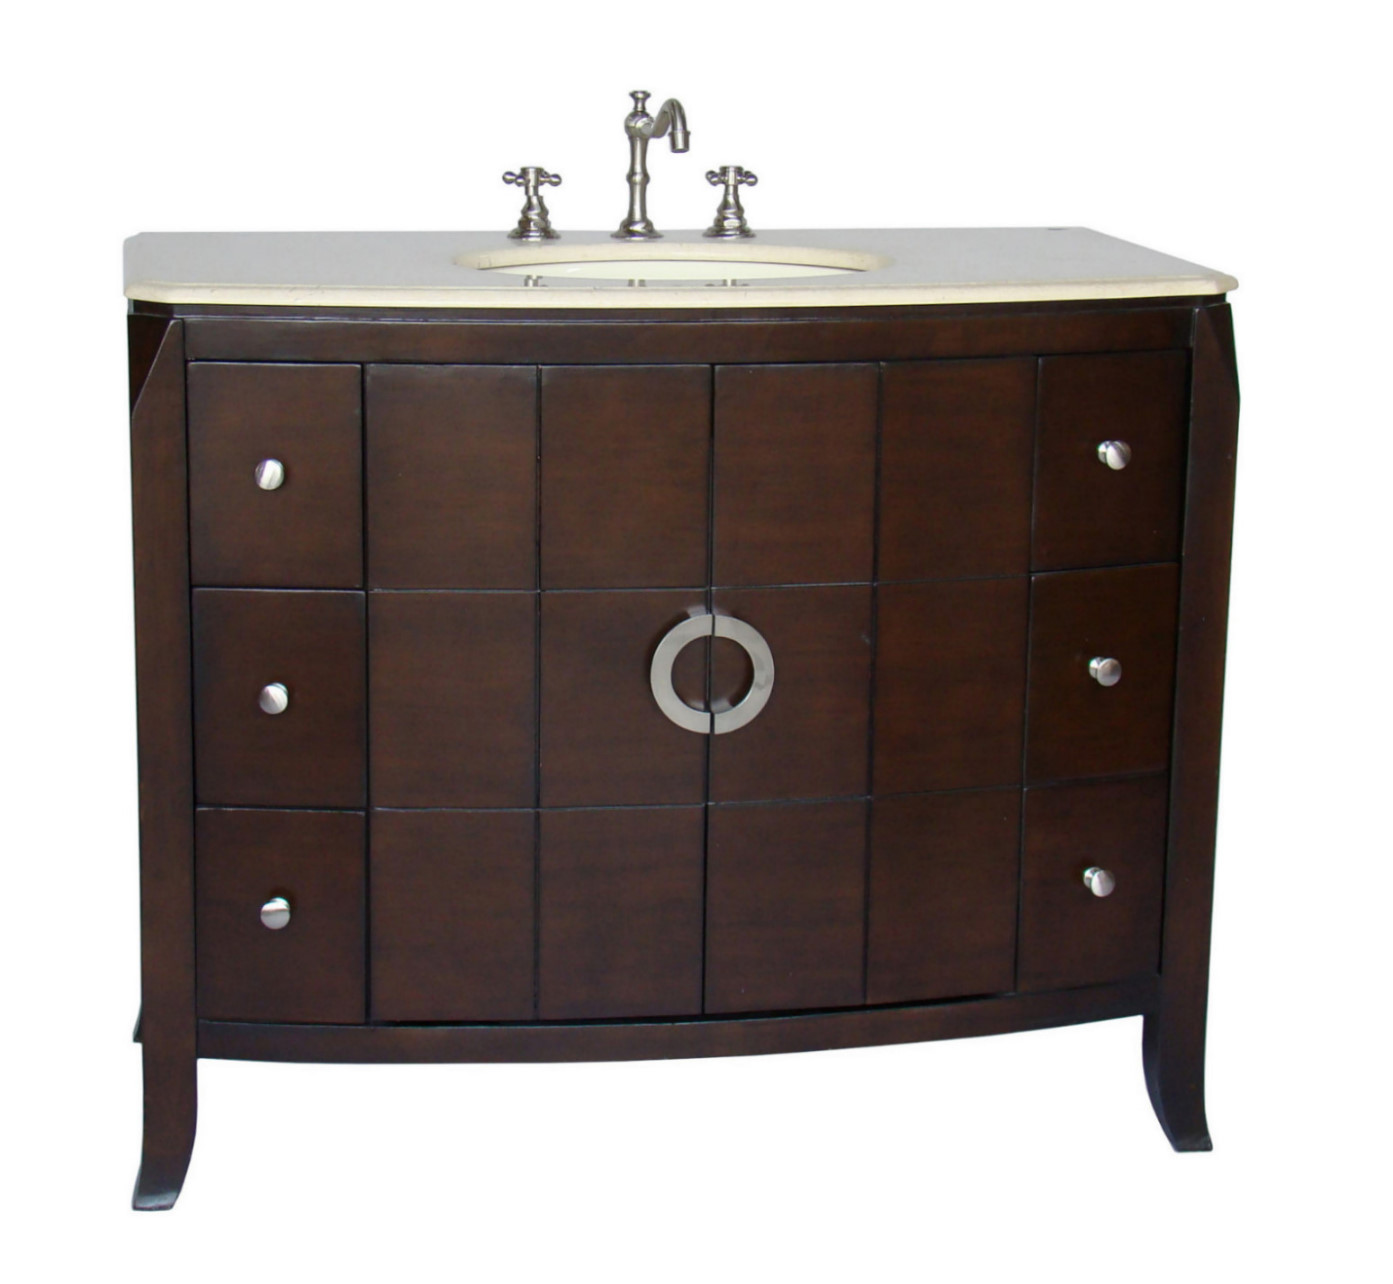 30 inch to 48 inch vanities single bathroom vanities 48 inch bathroom vanity